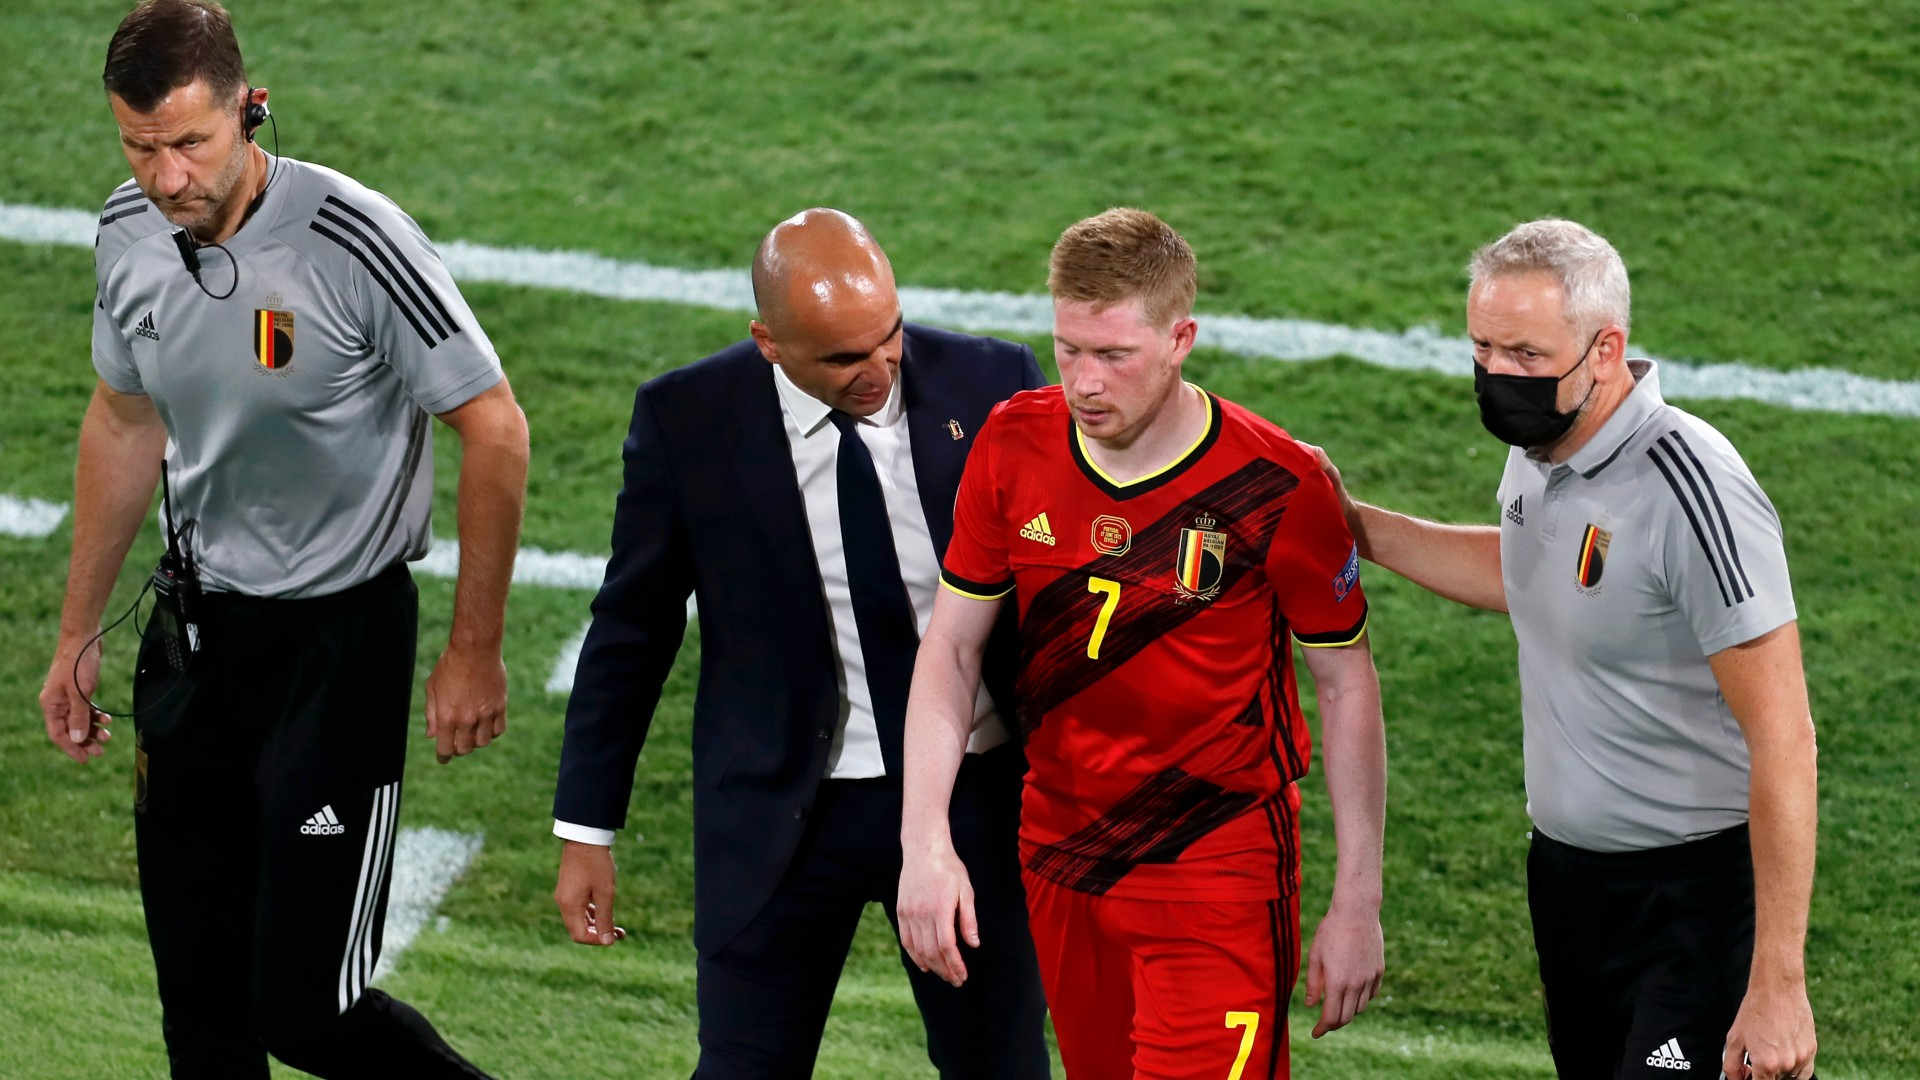 De Bruyne limps out of Belgium's Euro 2020 clash with Portugal